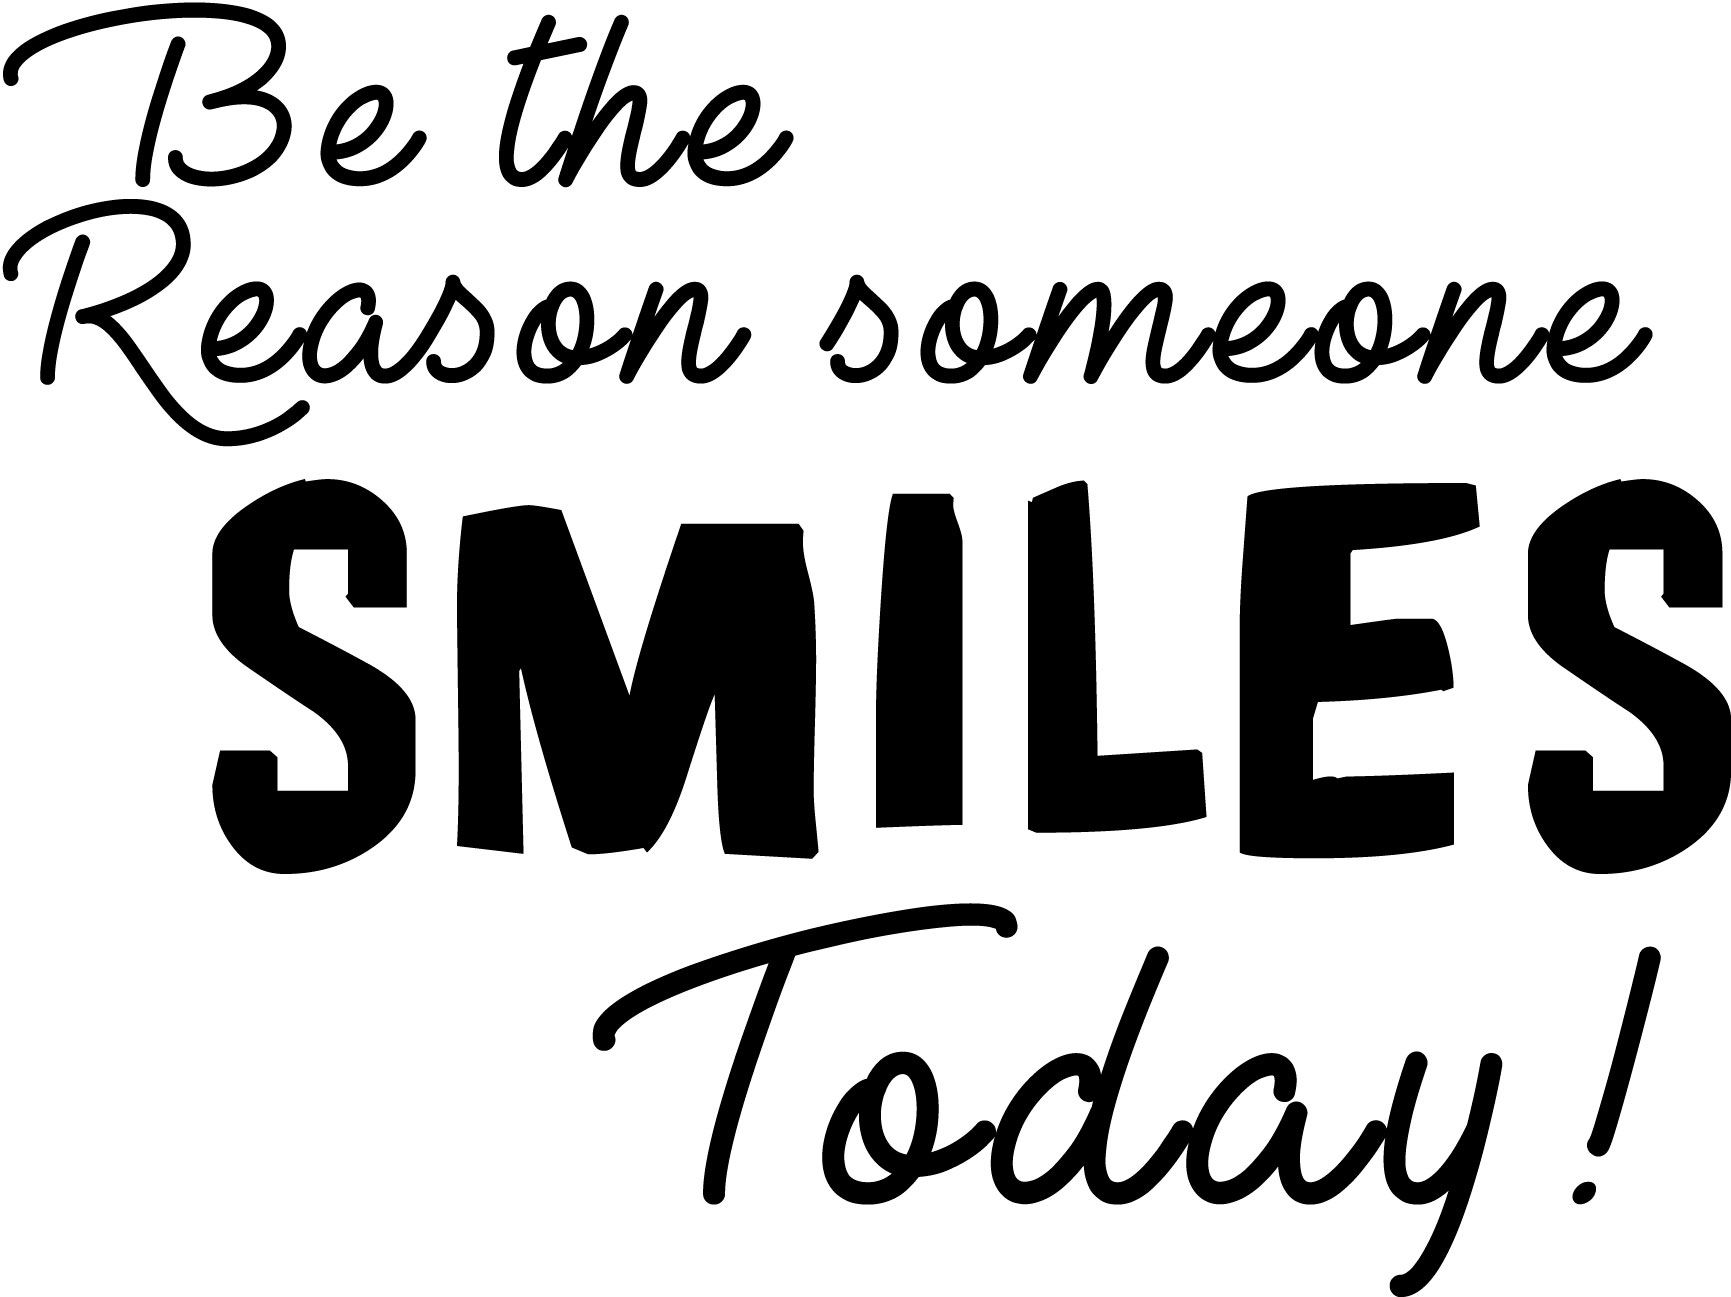 Be The Reason Someone Smiles Today Black Vinyl Decal Sticker 5 x 5